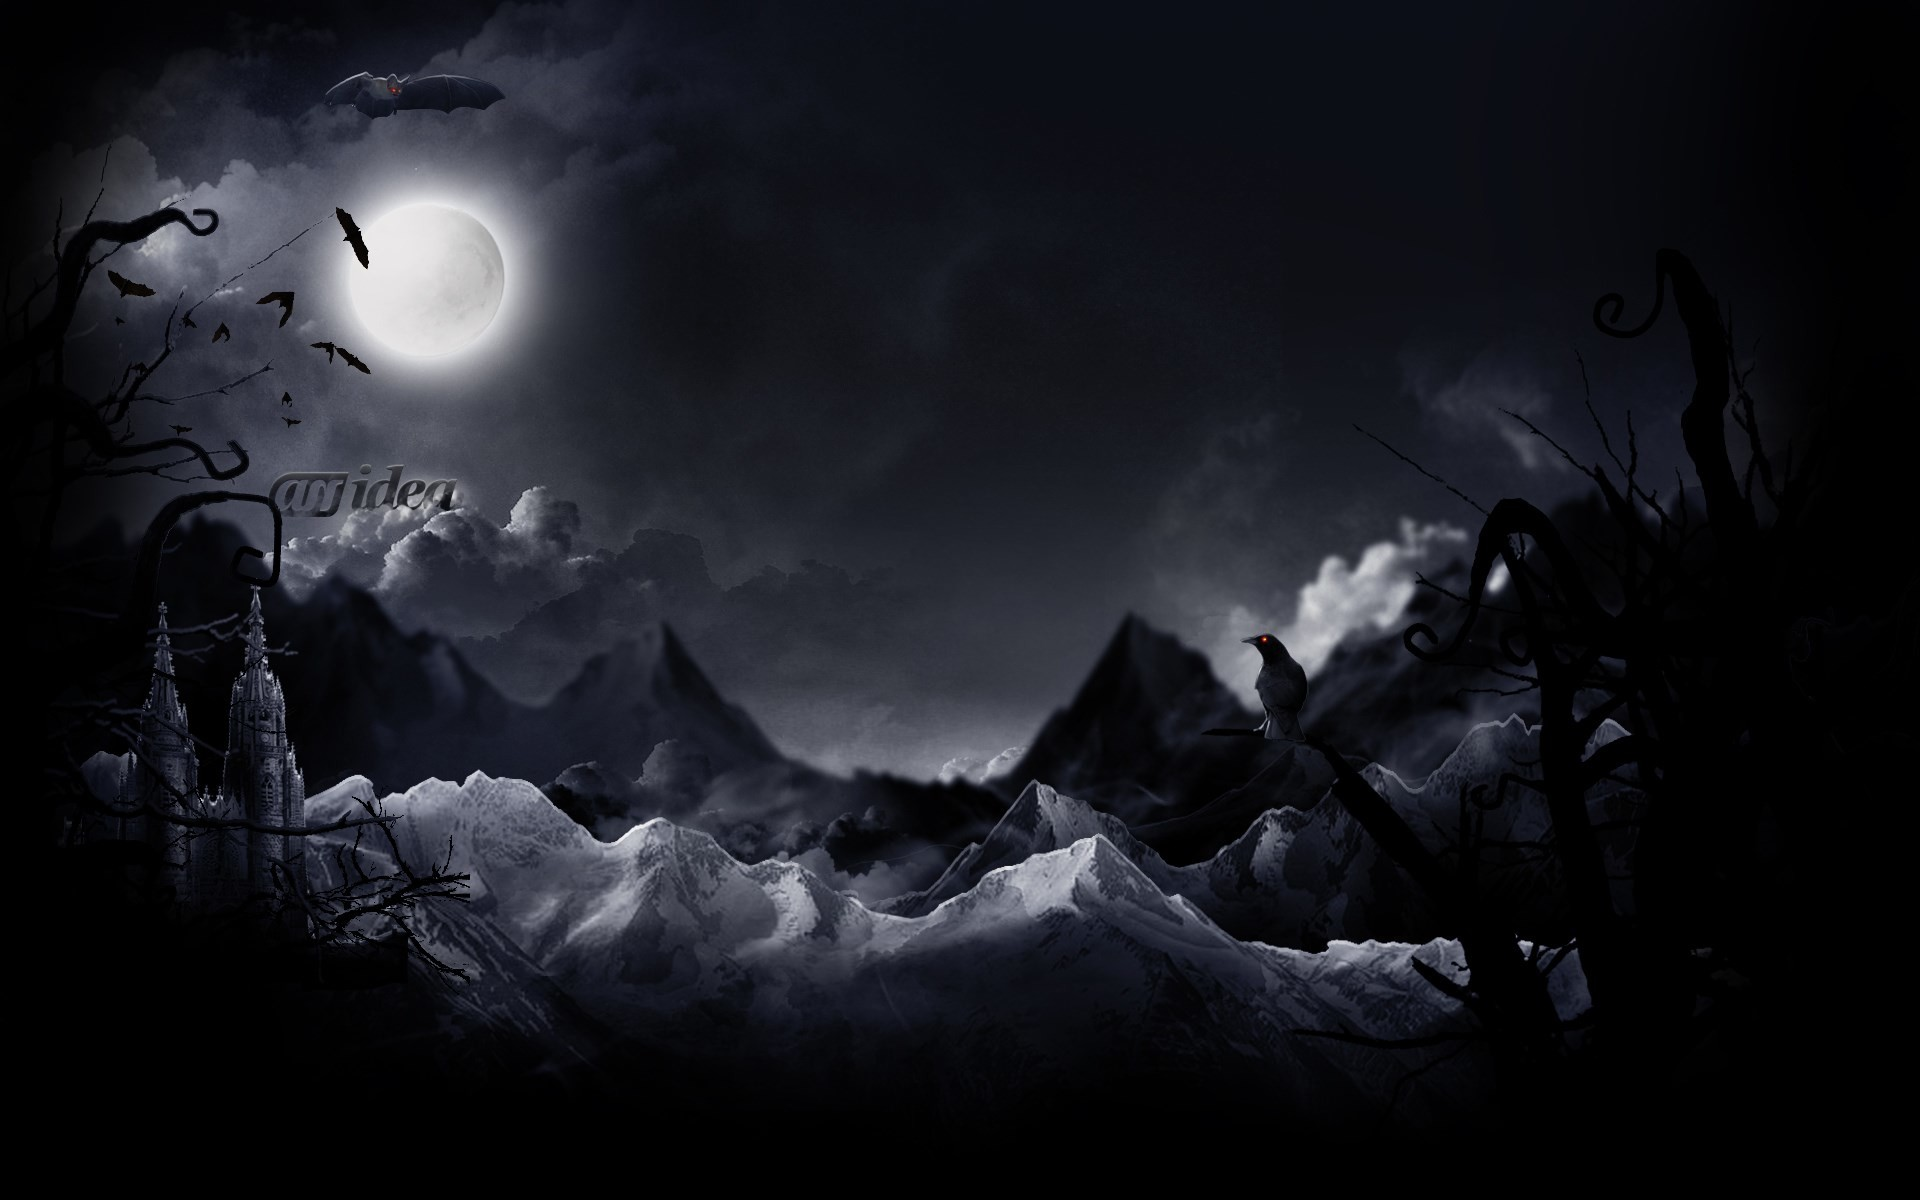 1920x1200 wallpaper-moon-creative-wallpapers-christian-halloween-themes.jpg